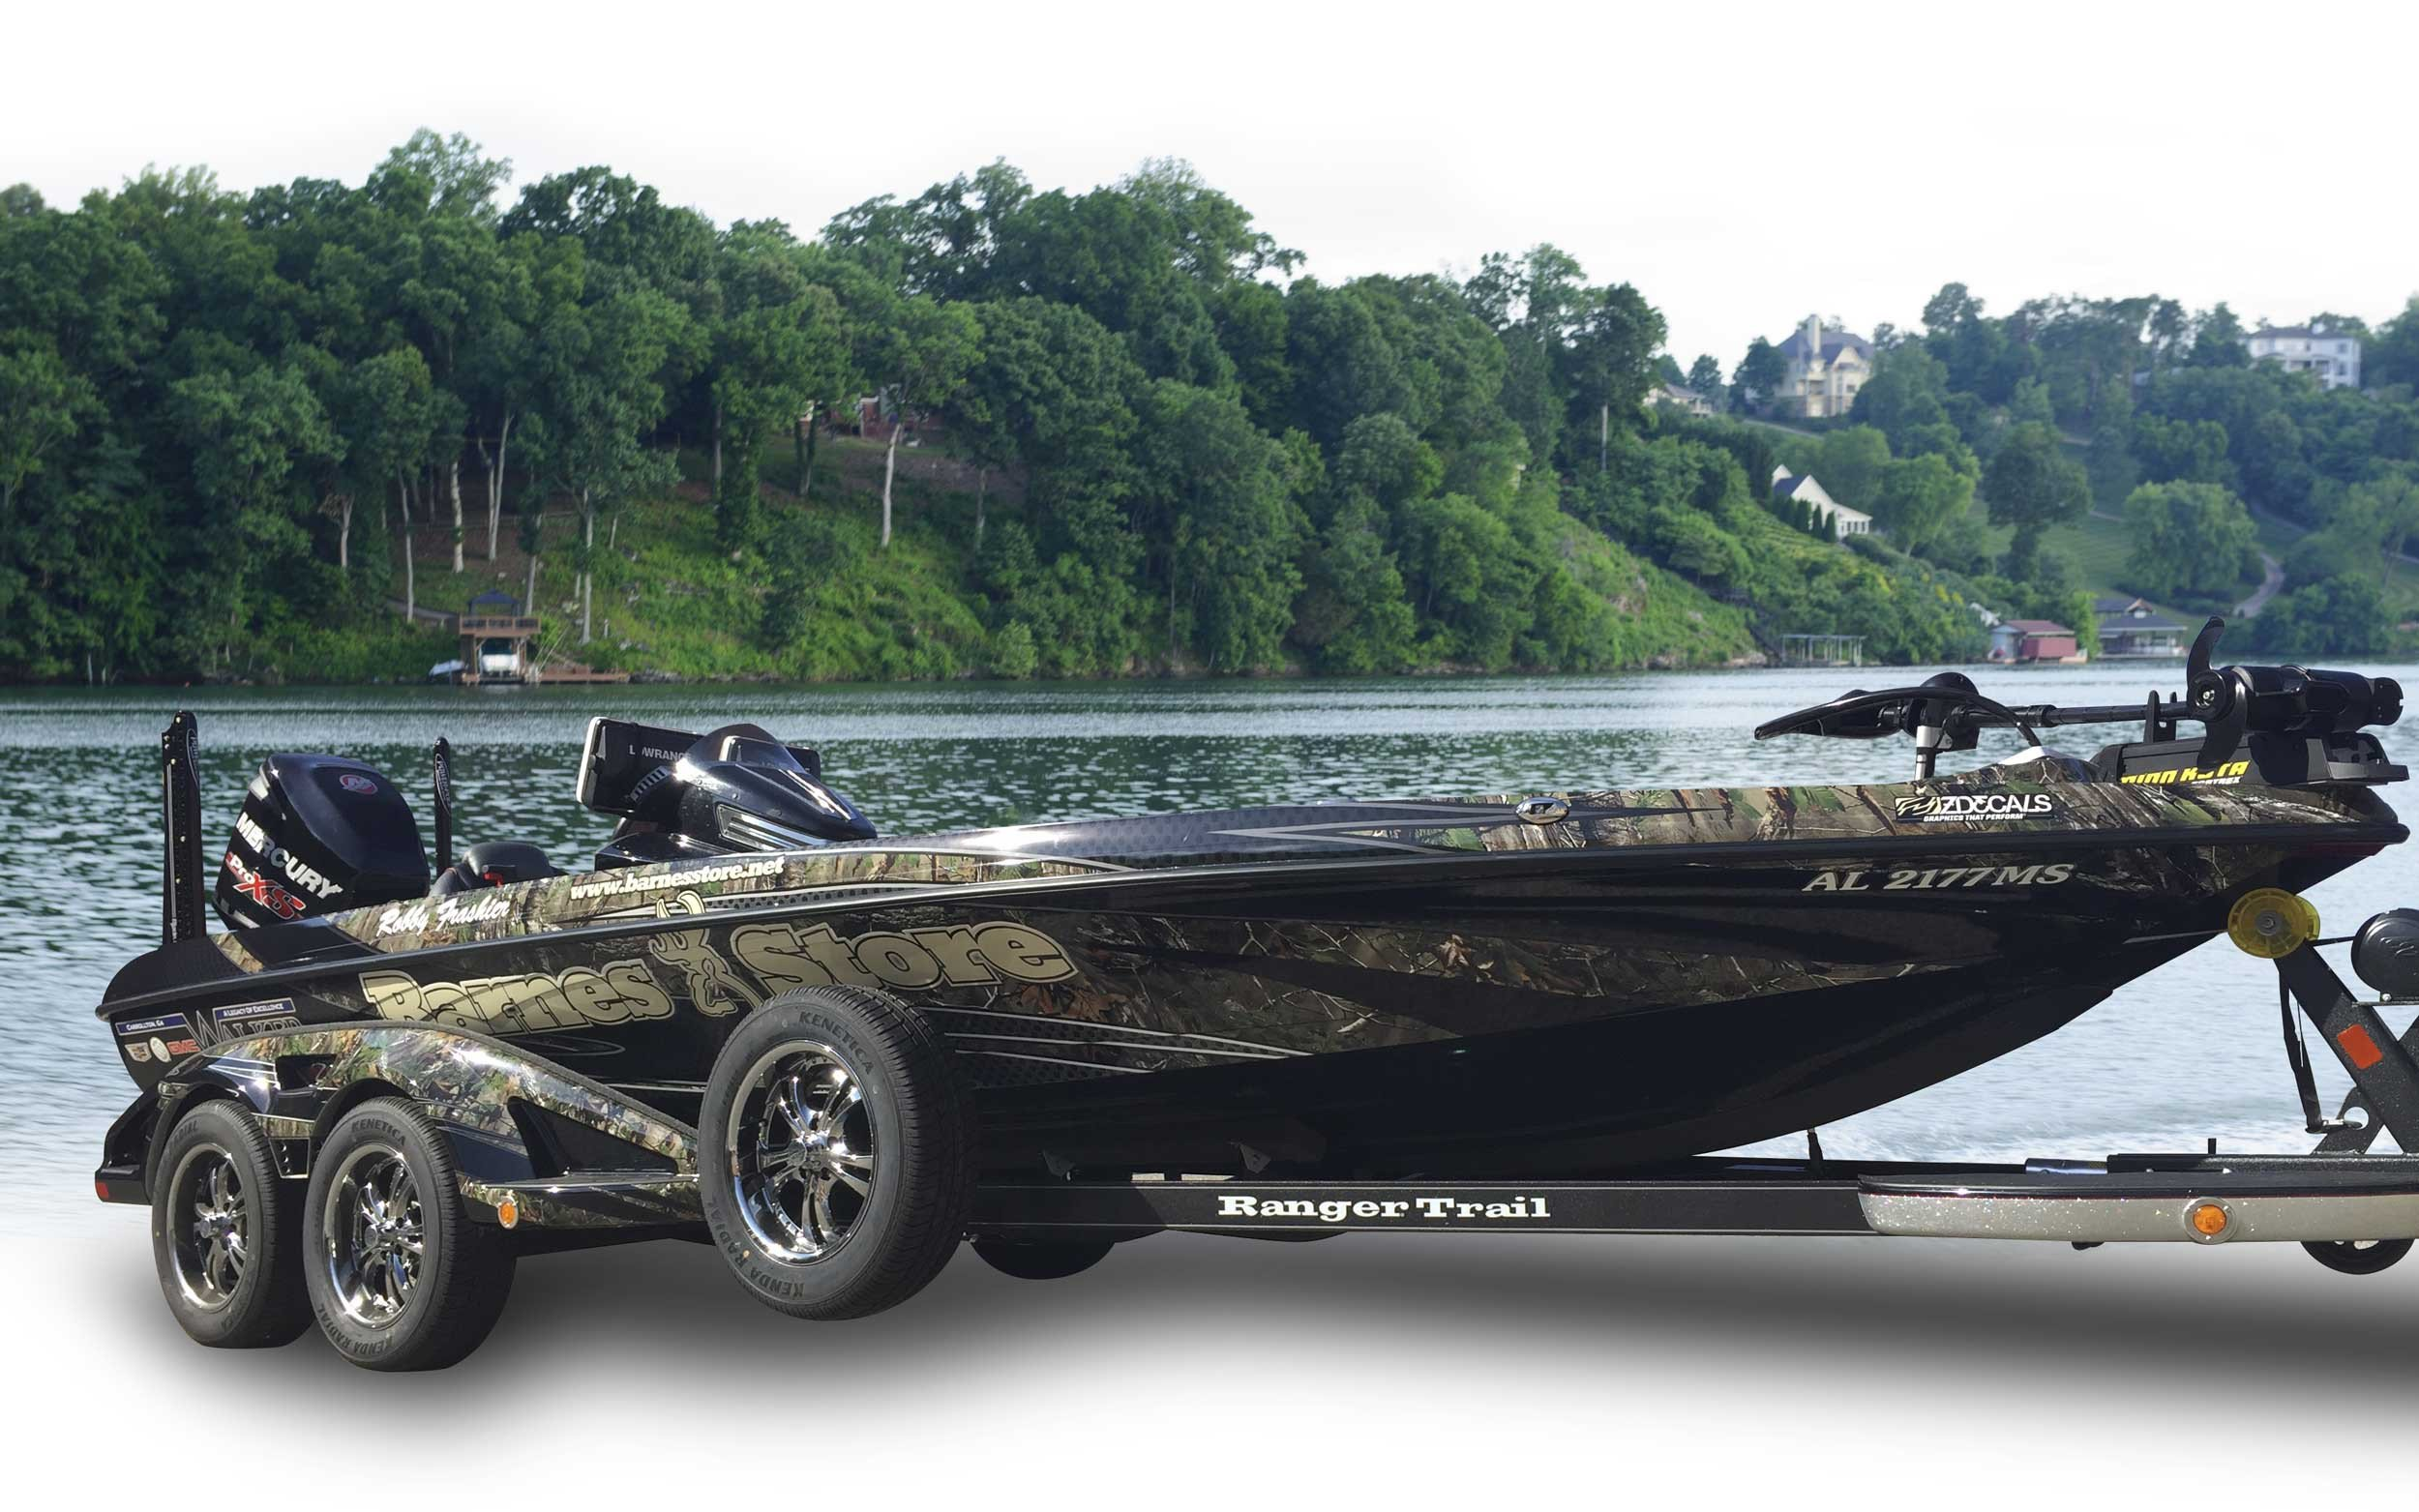 Boat Wrap Design Template Zdecals the Professionals Choice for 3m Wraps for Boats